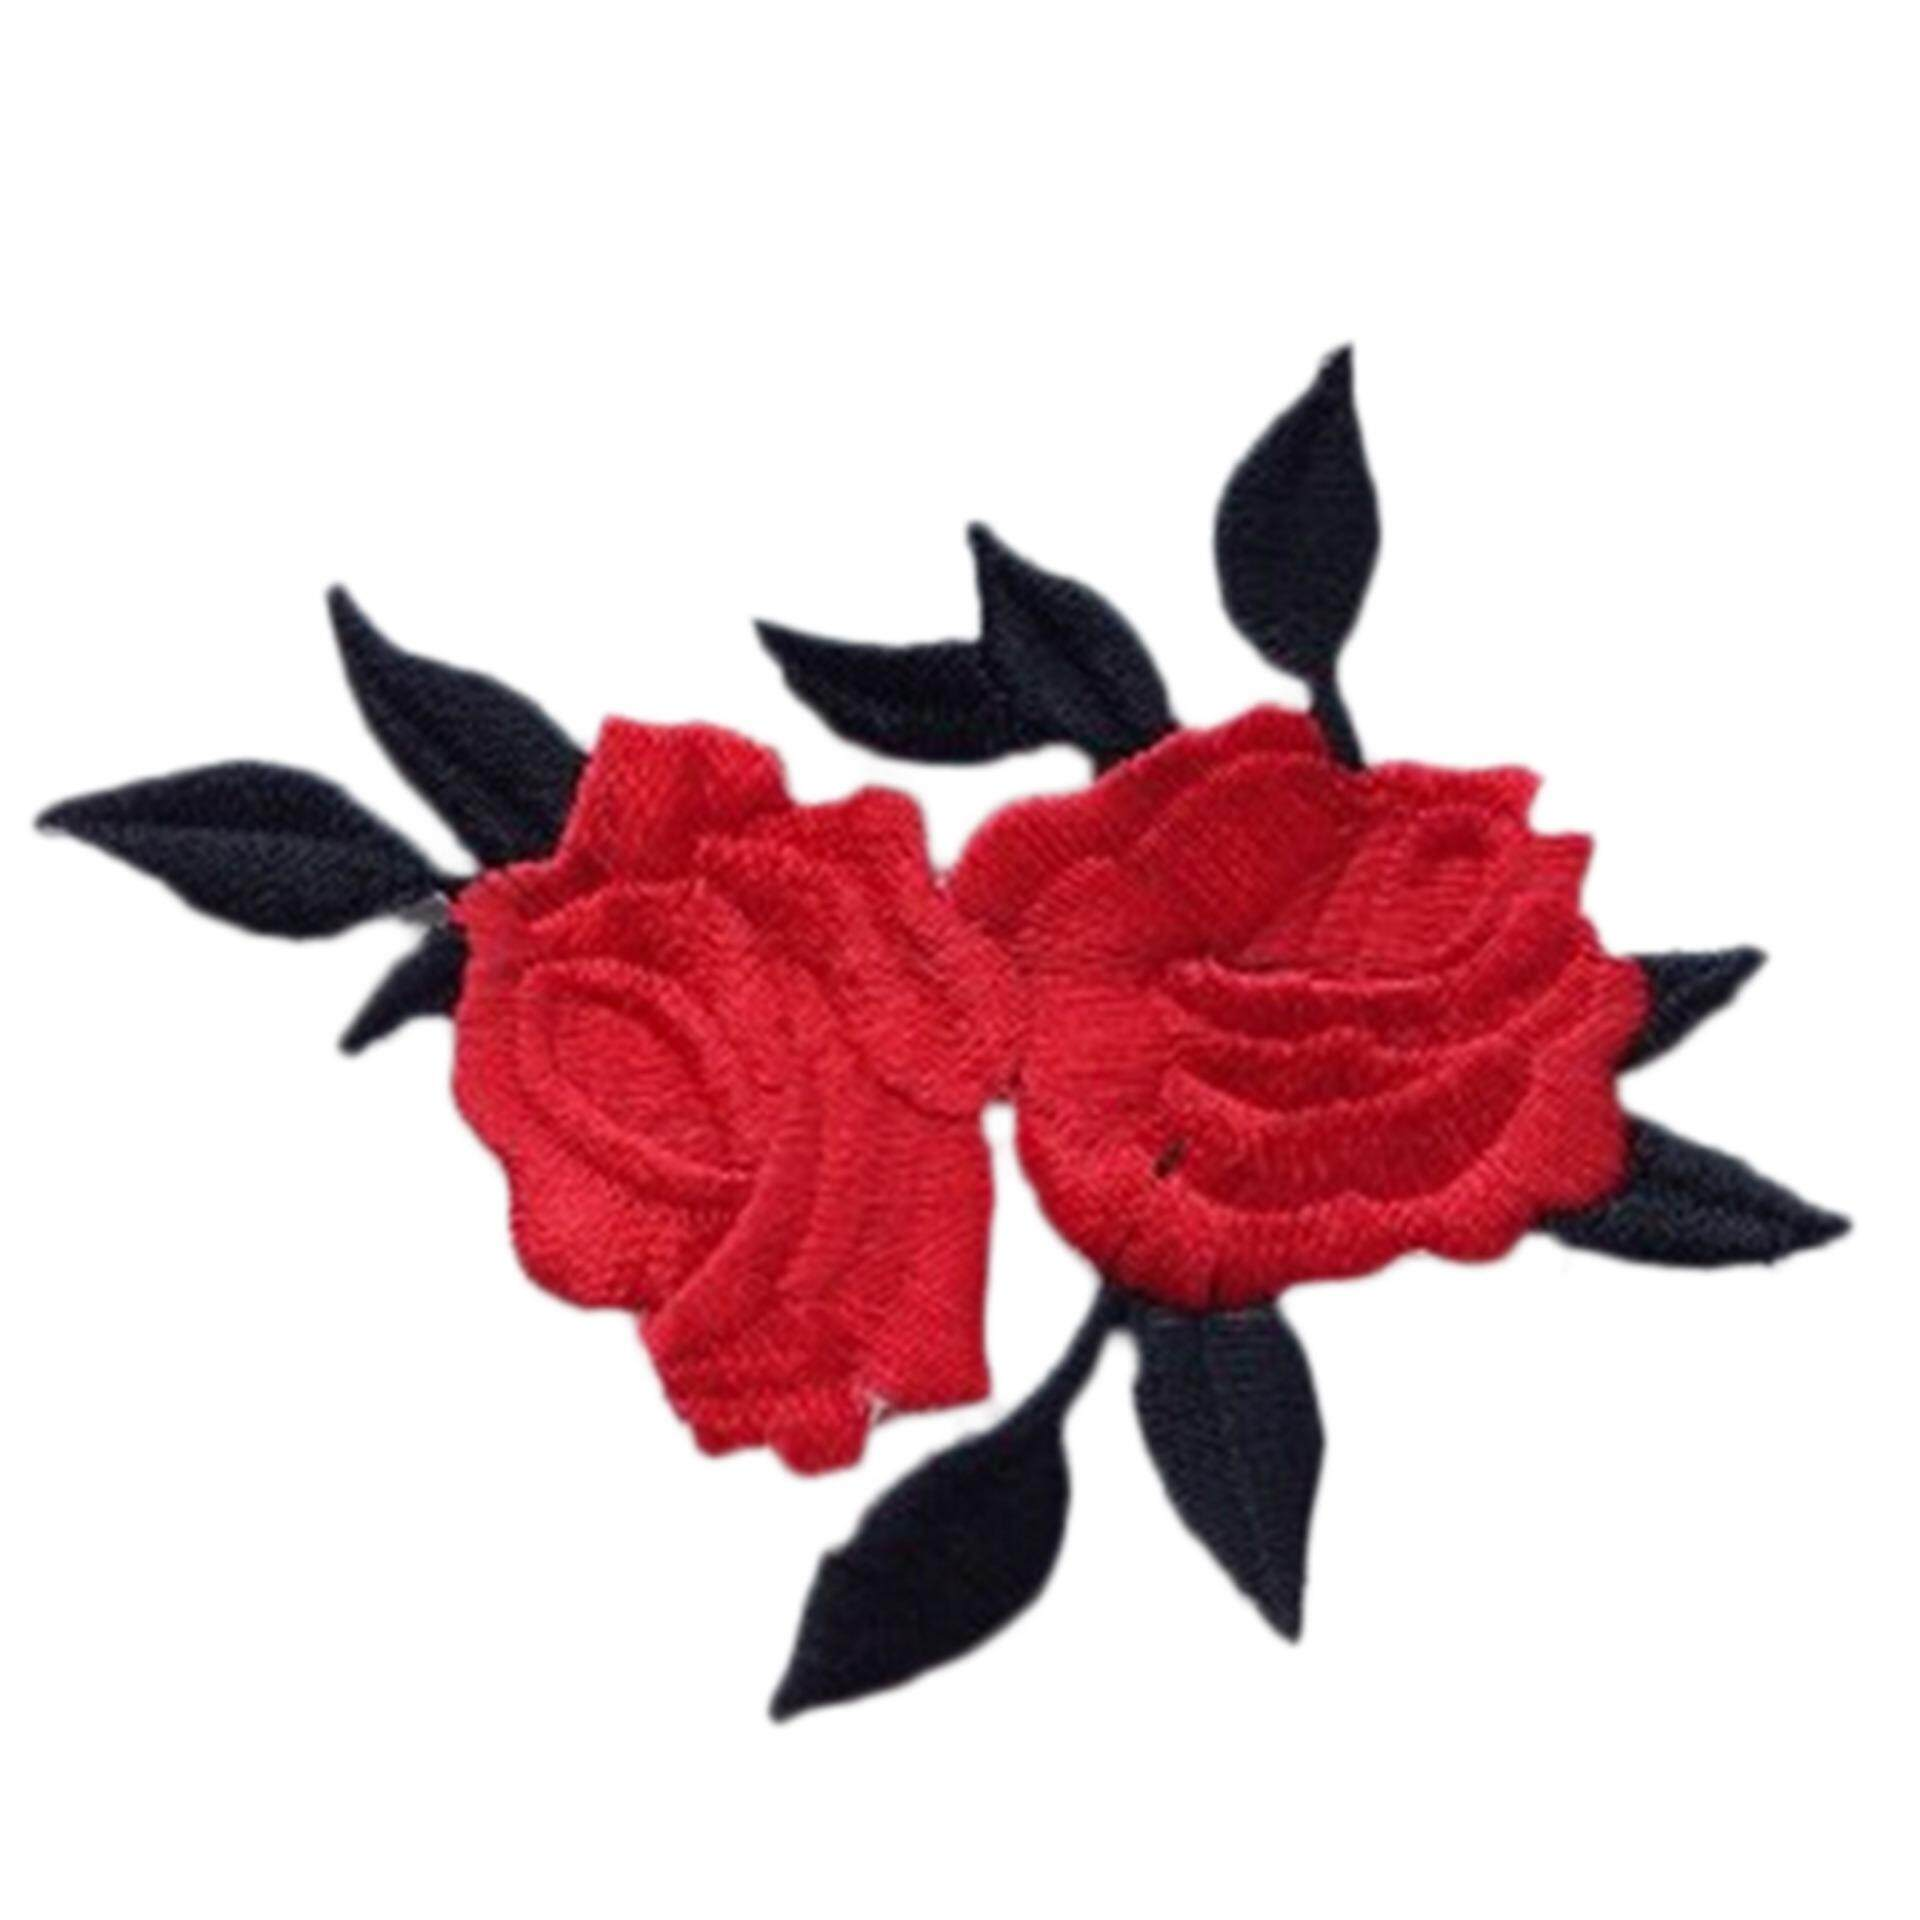 Rose Flower Leaves Embroidery Iron On Applique Patch Red